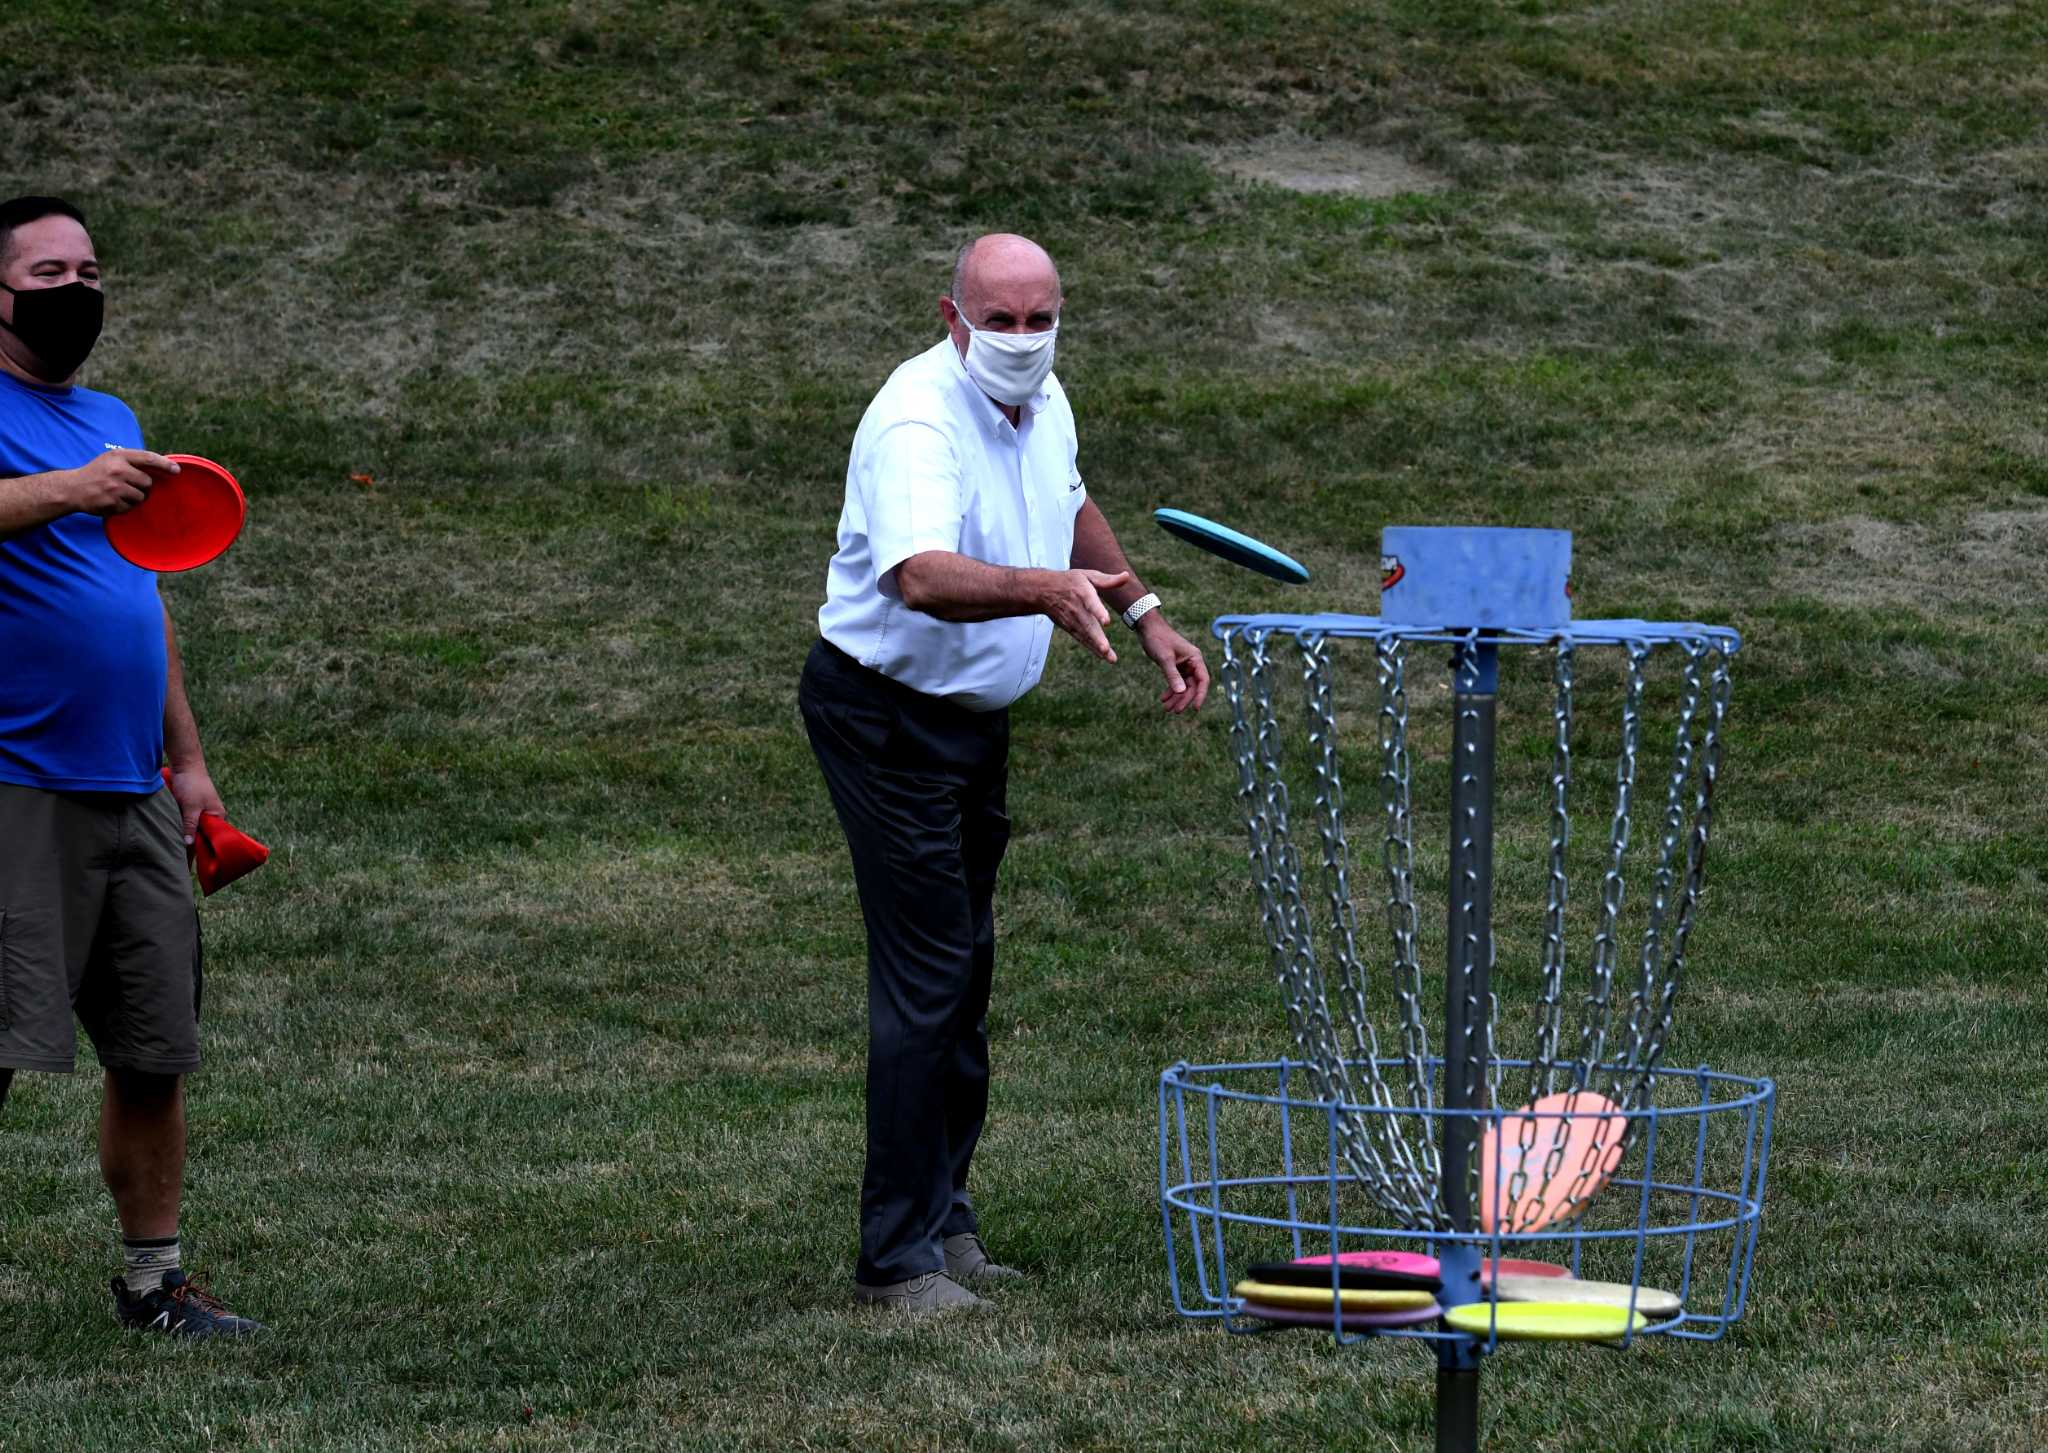 Disc golf course debuts at Troy's Prospect Park